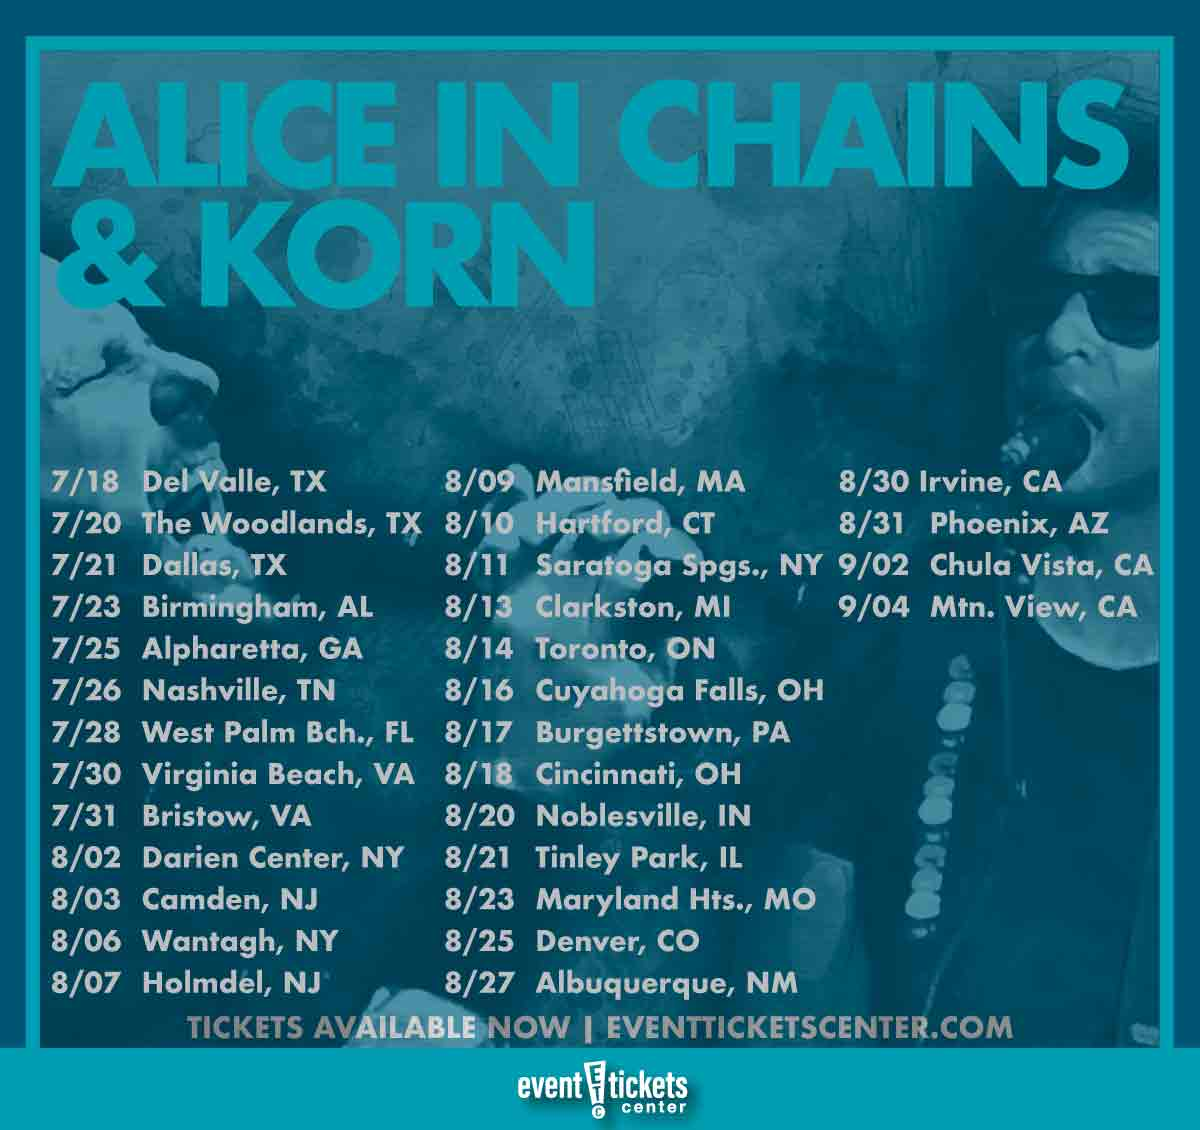 alice in chains and korn tour dates